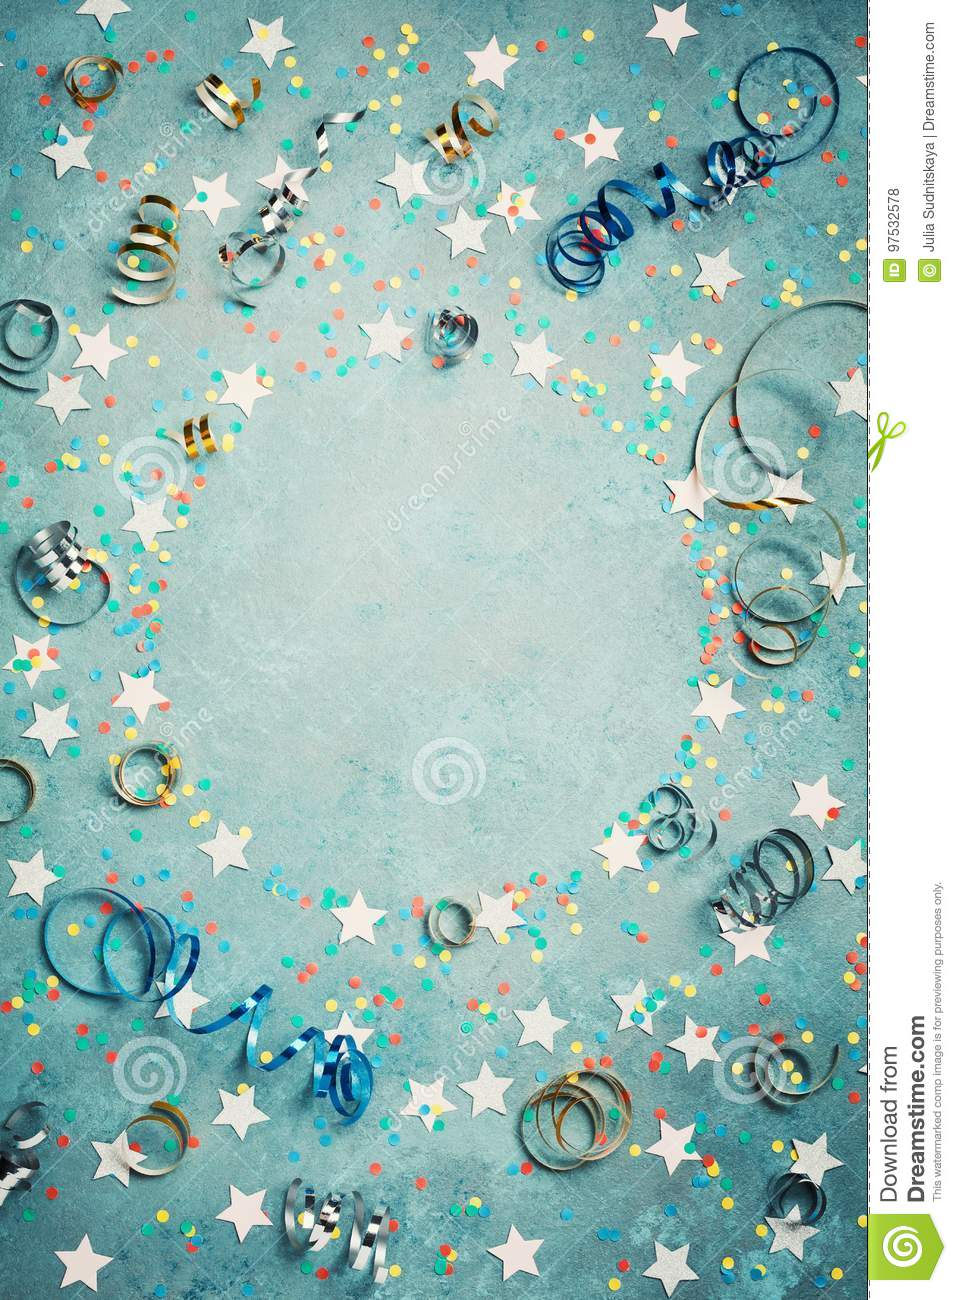 Party, carnival or birthday frame with colorful confetti and streamer on vintage blue table top view. Flat lay style. Holiday.